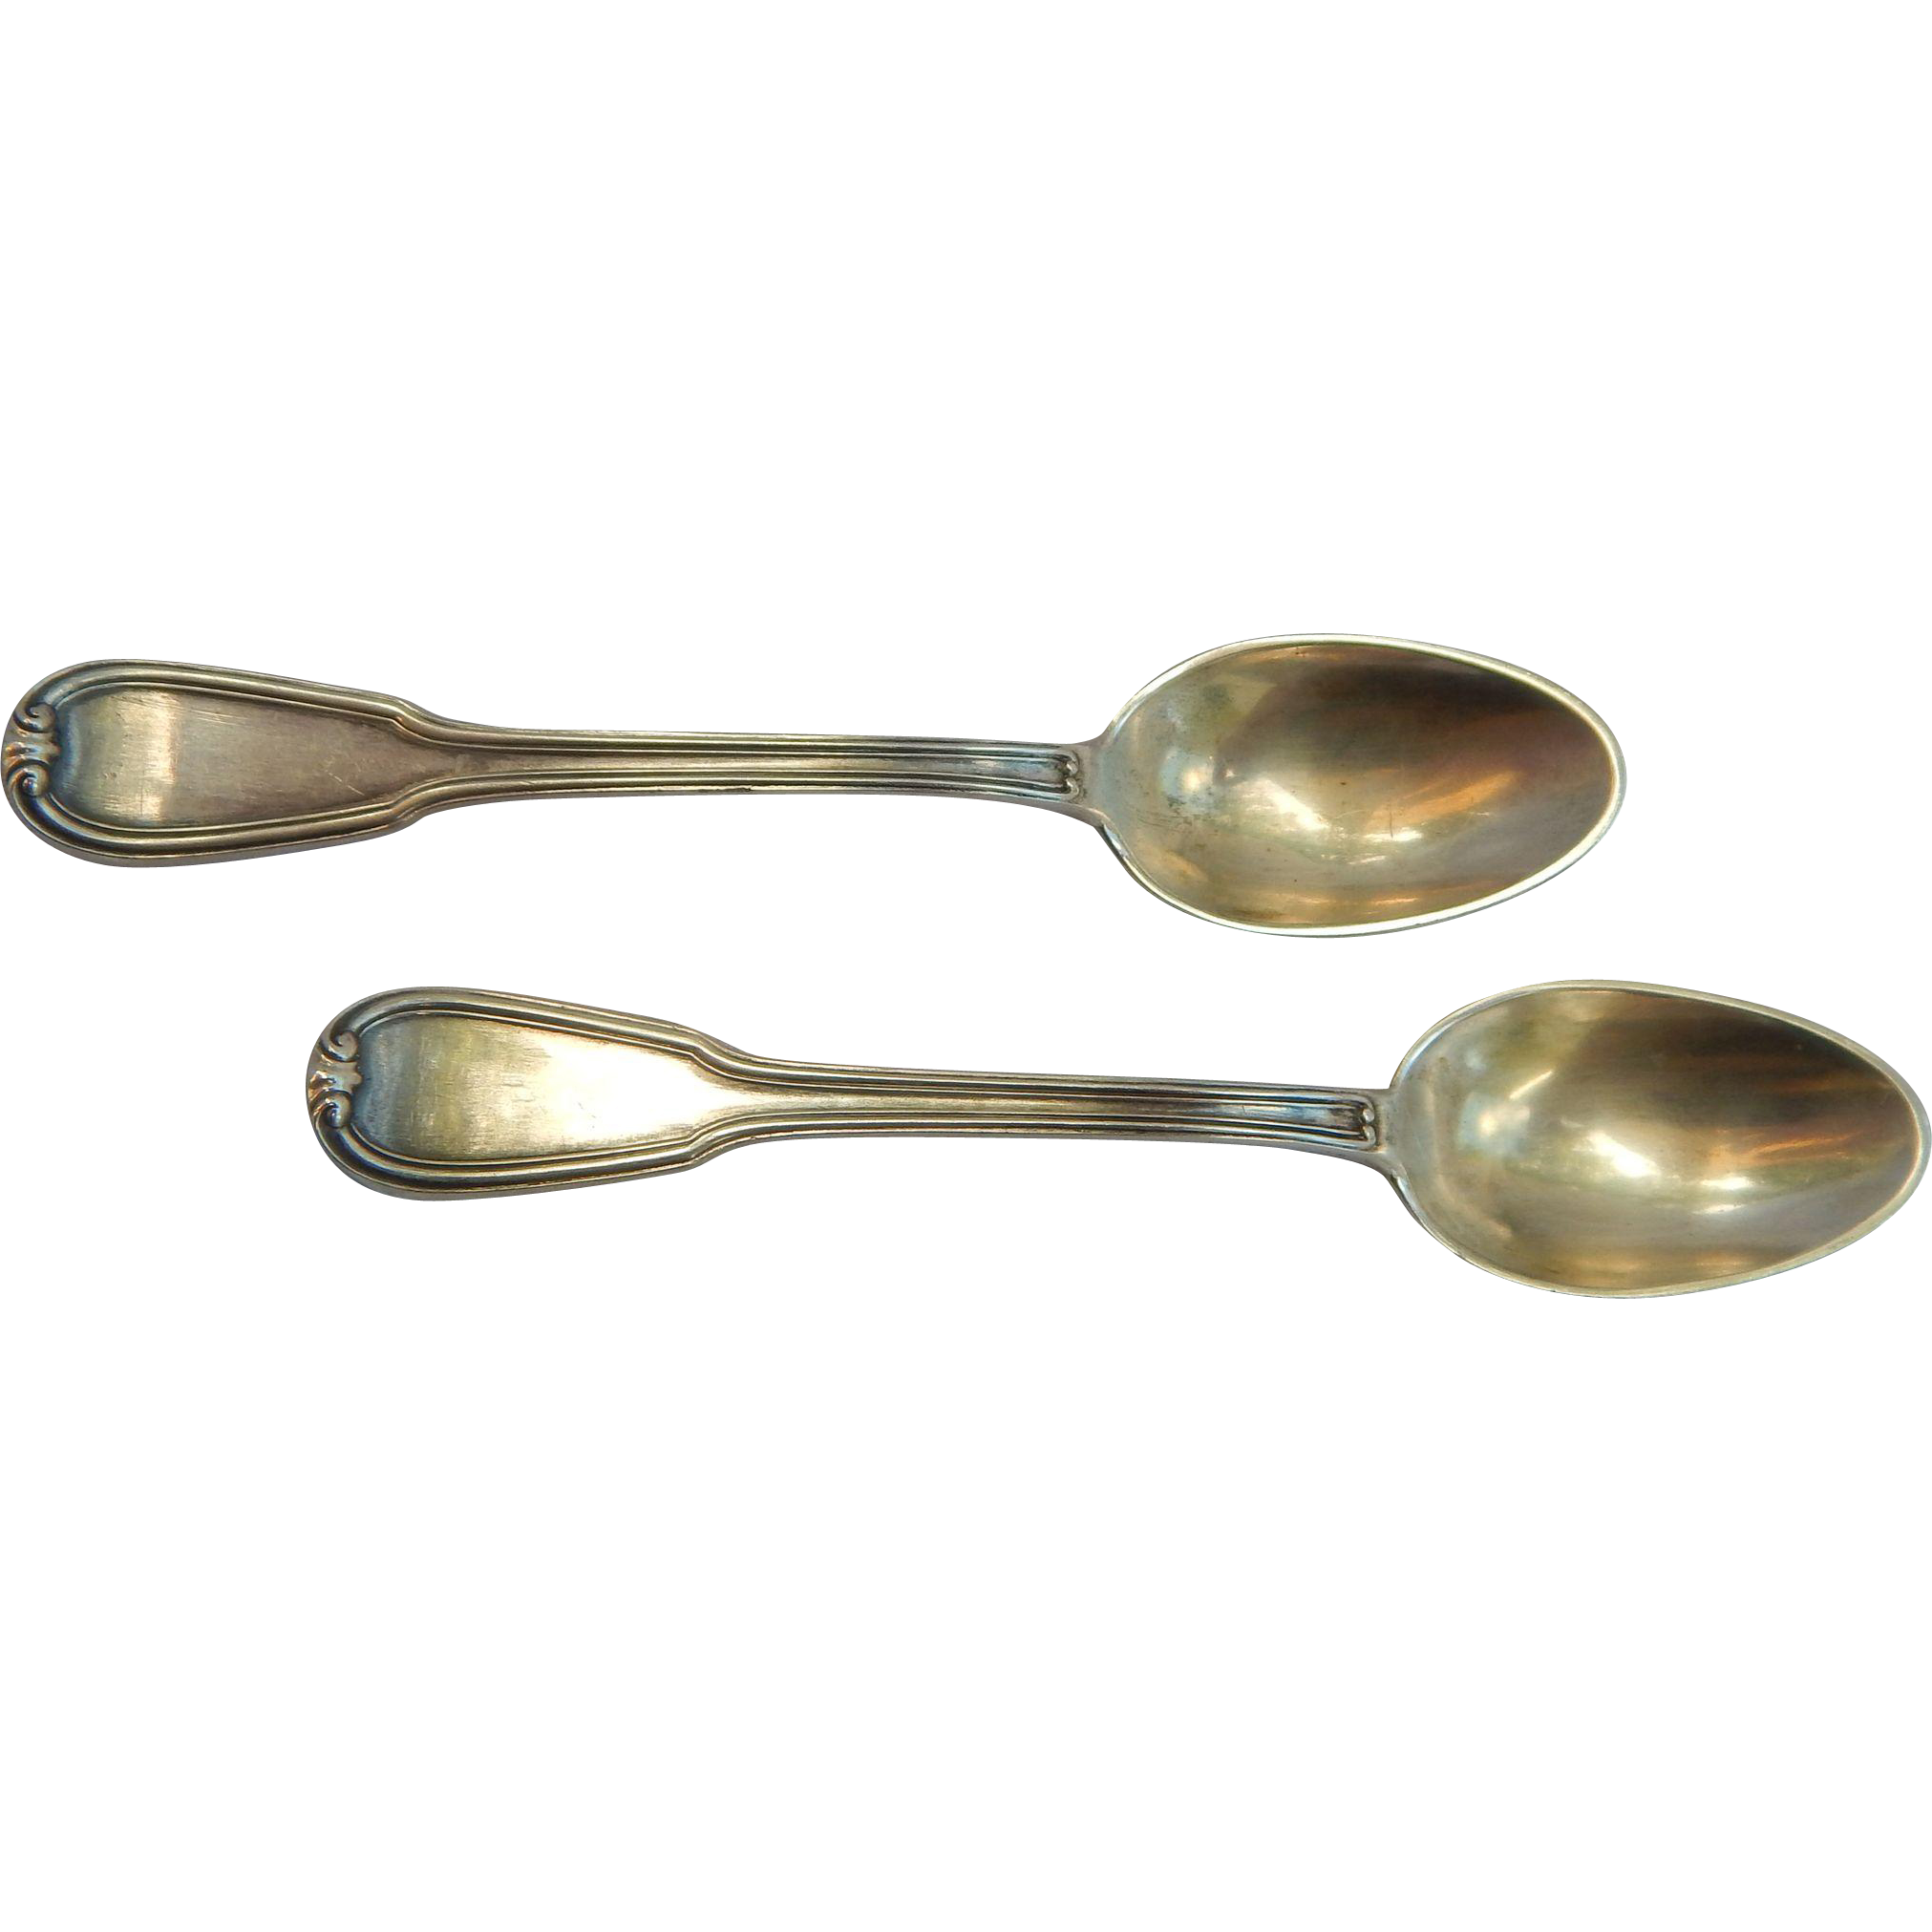 800 Silver Demitasse Spoon Pair